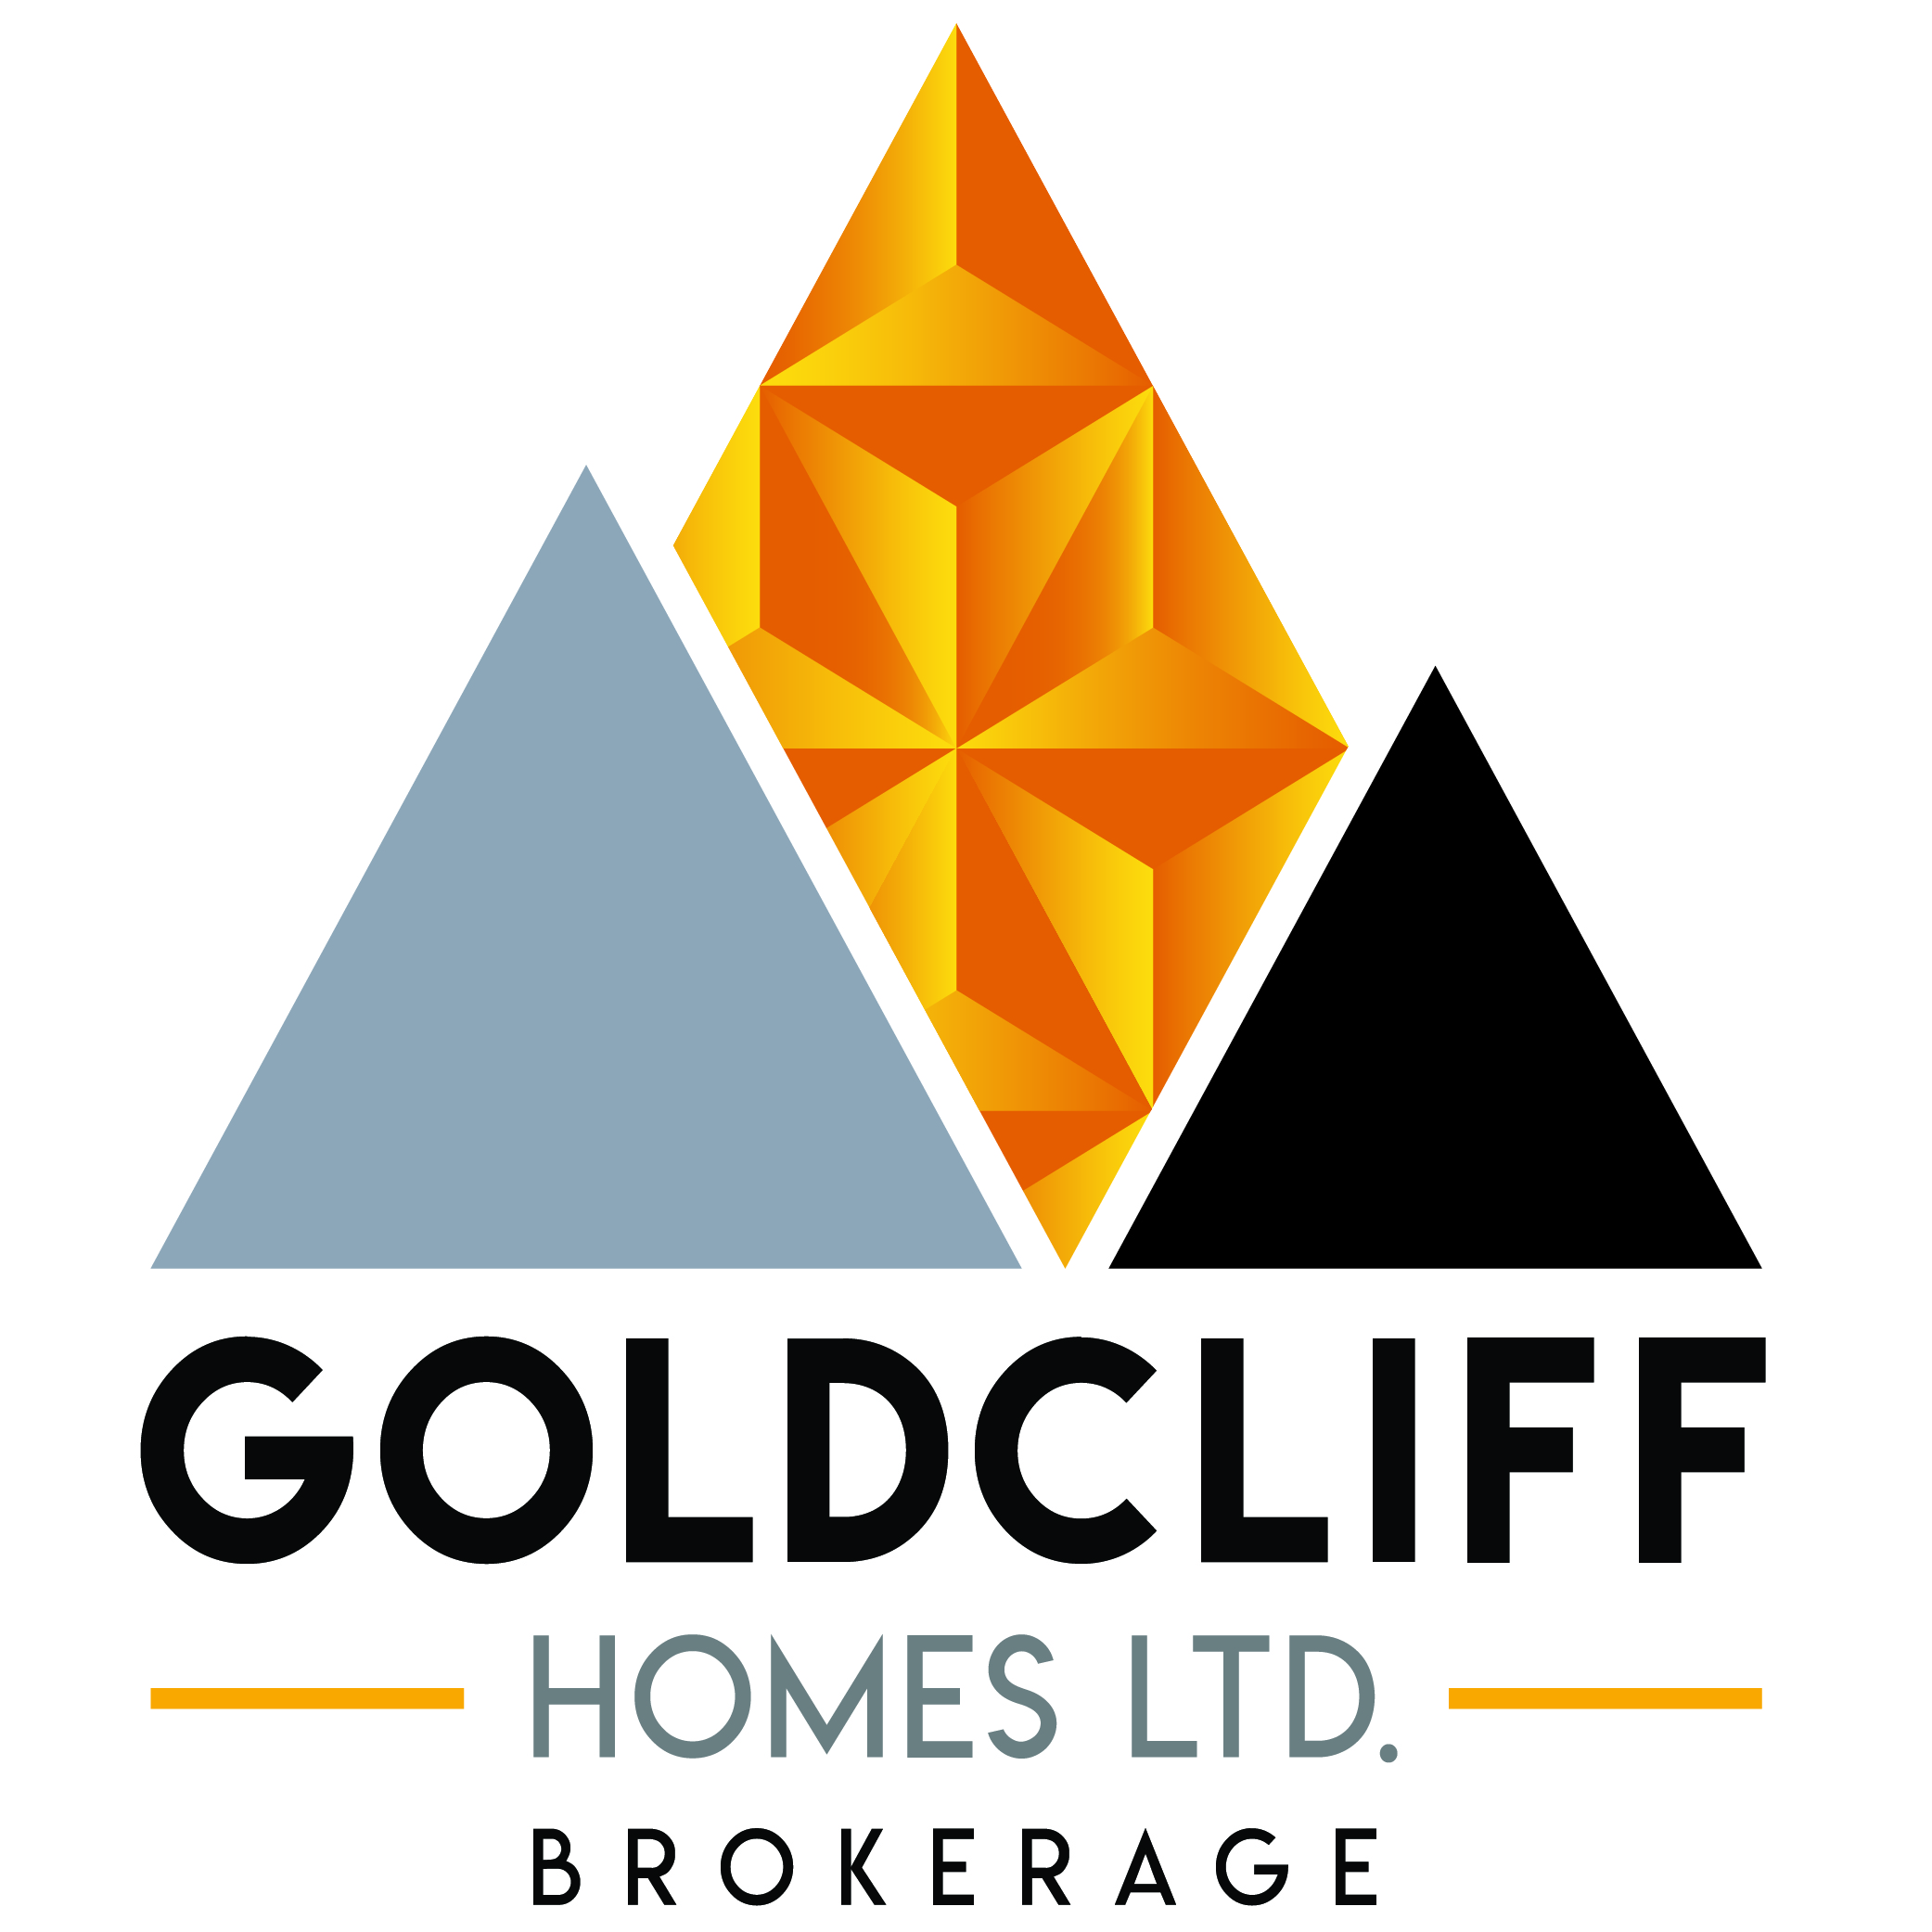 GOLDCLIFF HOMES LTD. Brokerage*